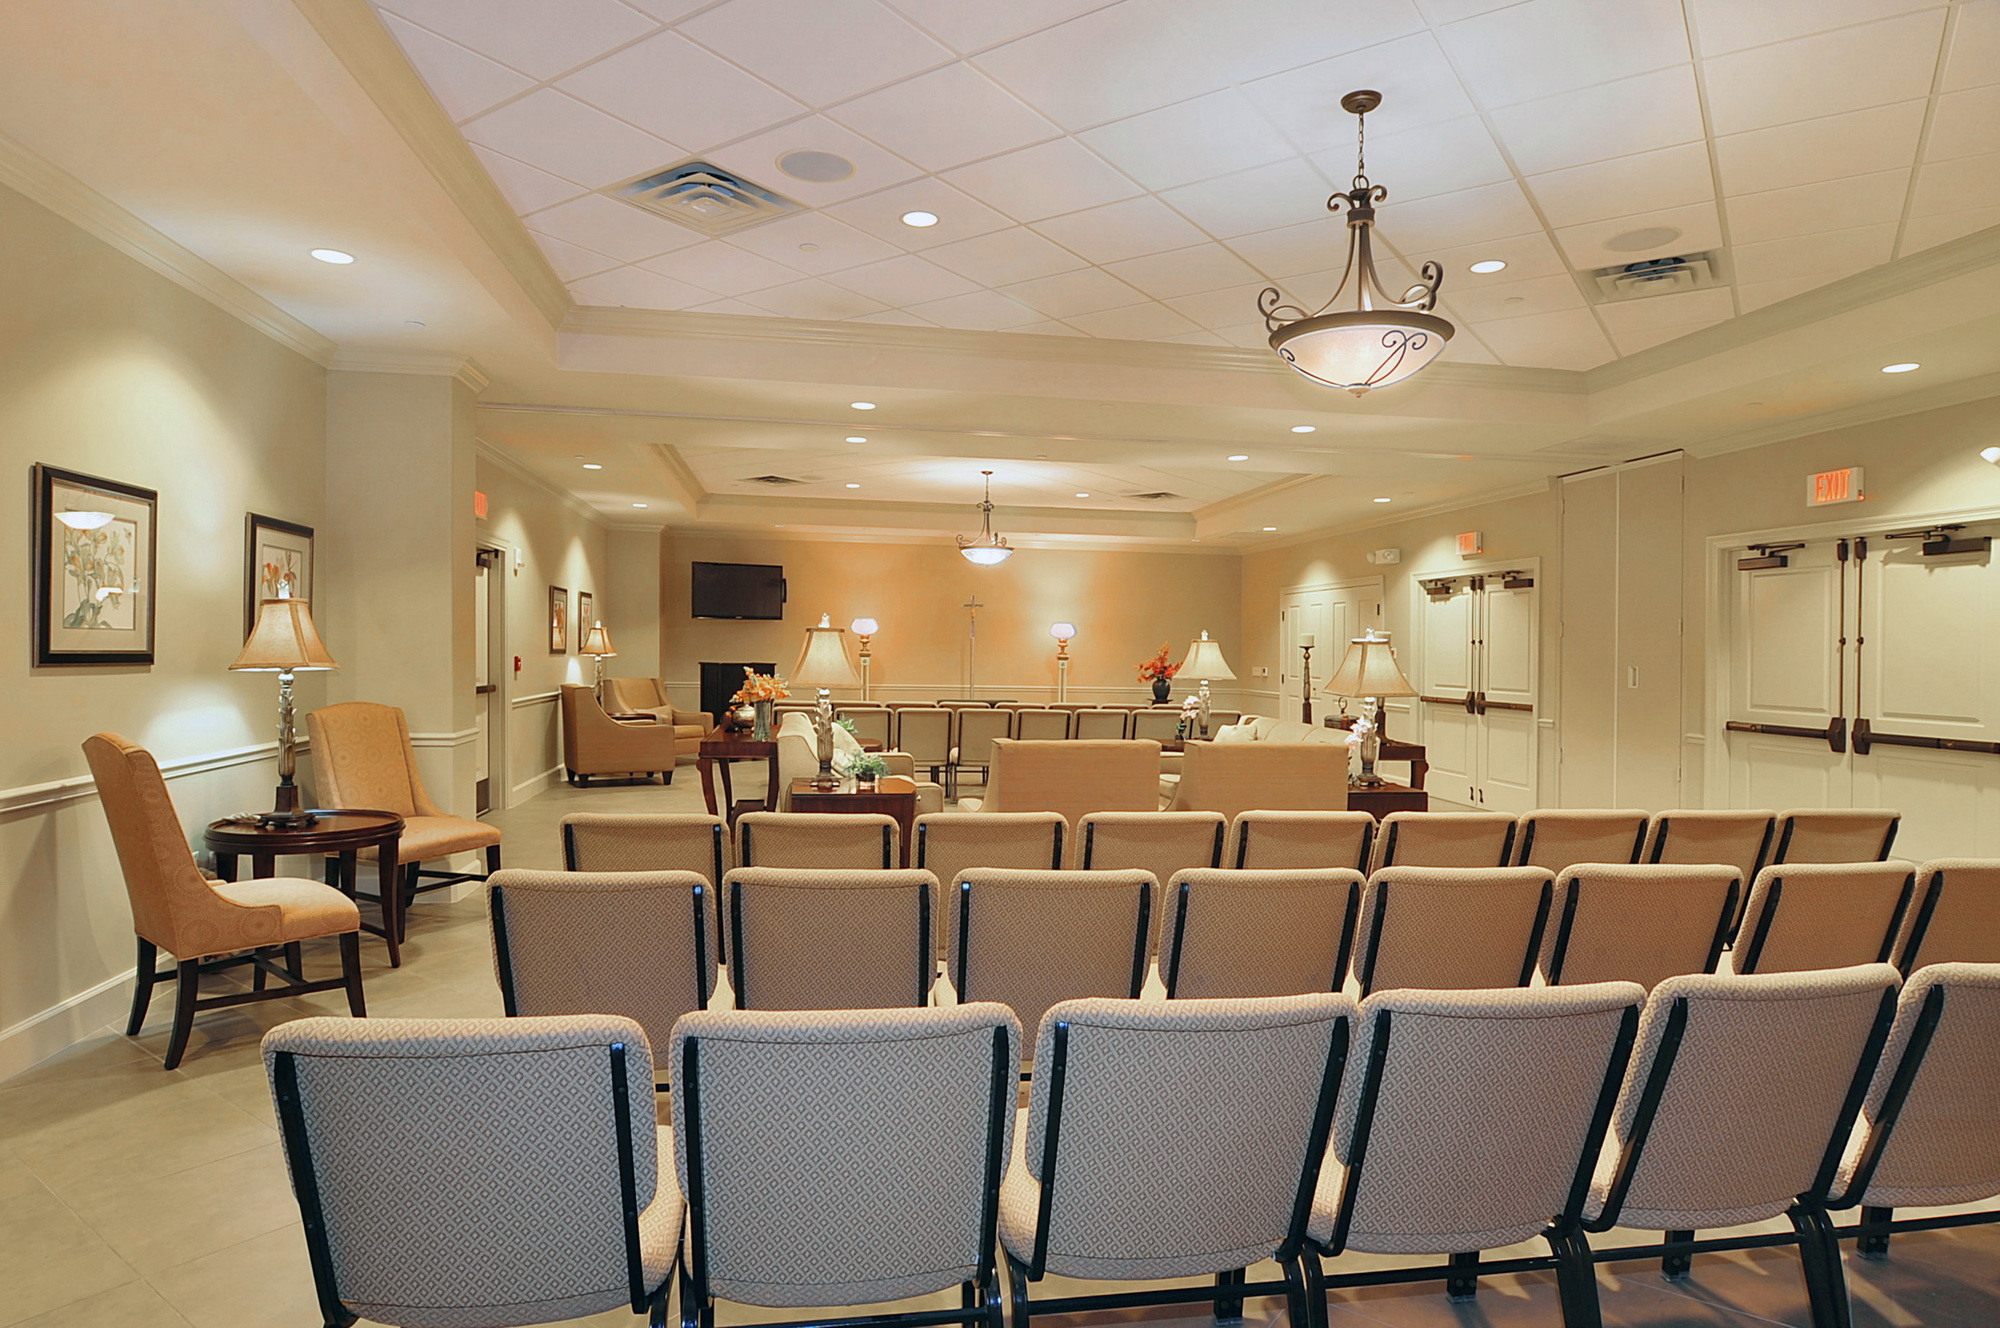 Caballero river woodlawn funeral home hialeah chapel for Home interior images